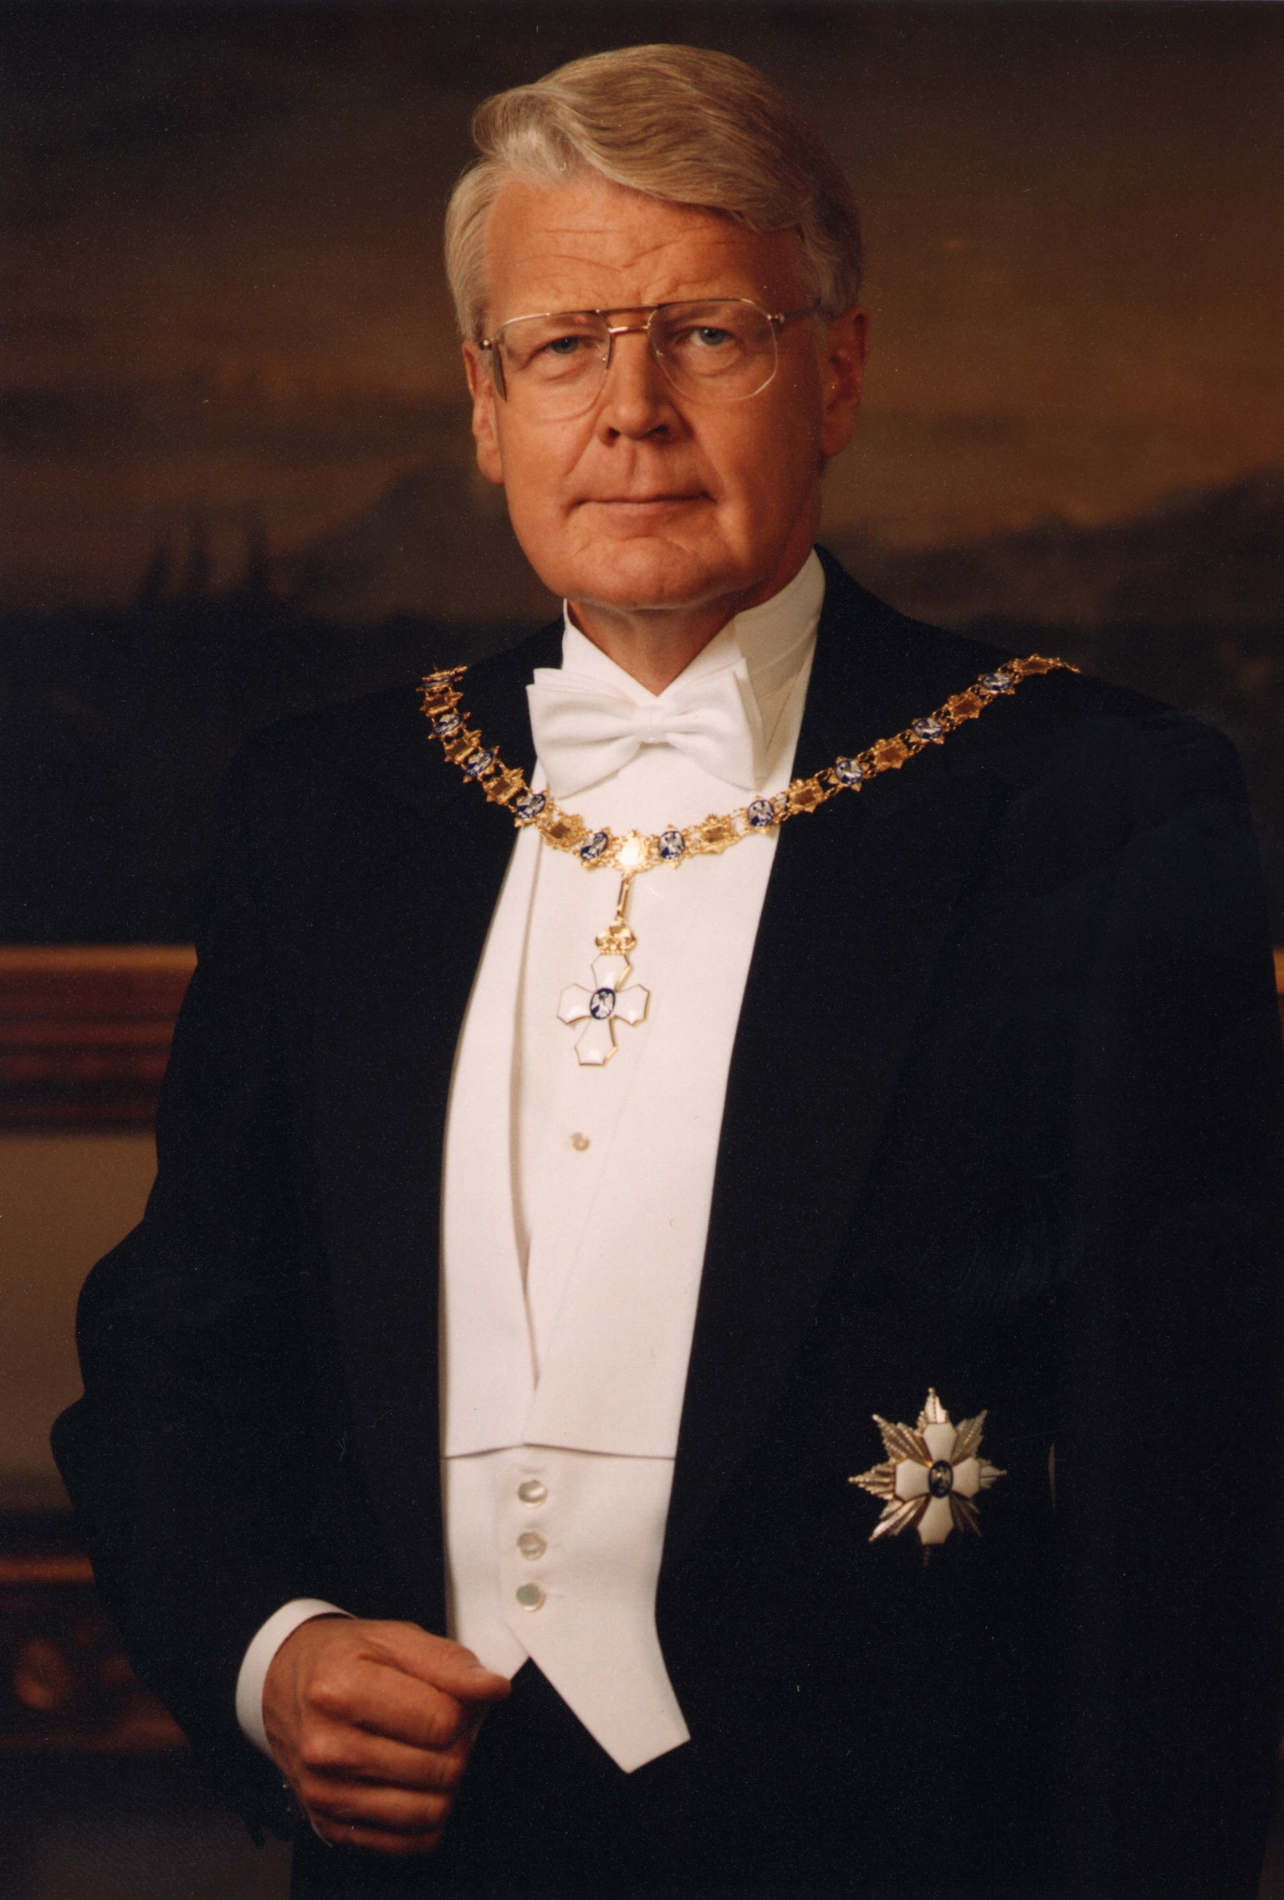 His Excellency frm. President Ólafur Ragnar Grímsson of Iceland